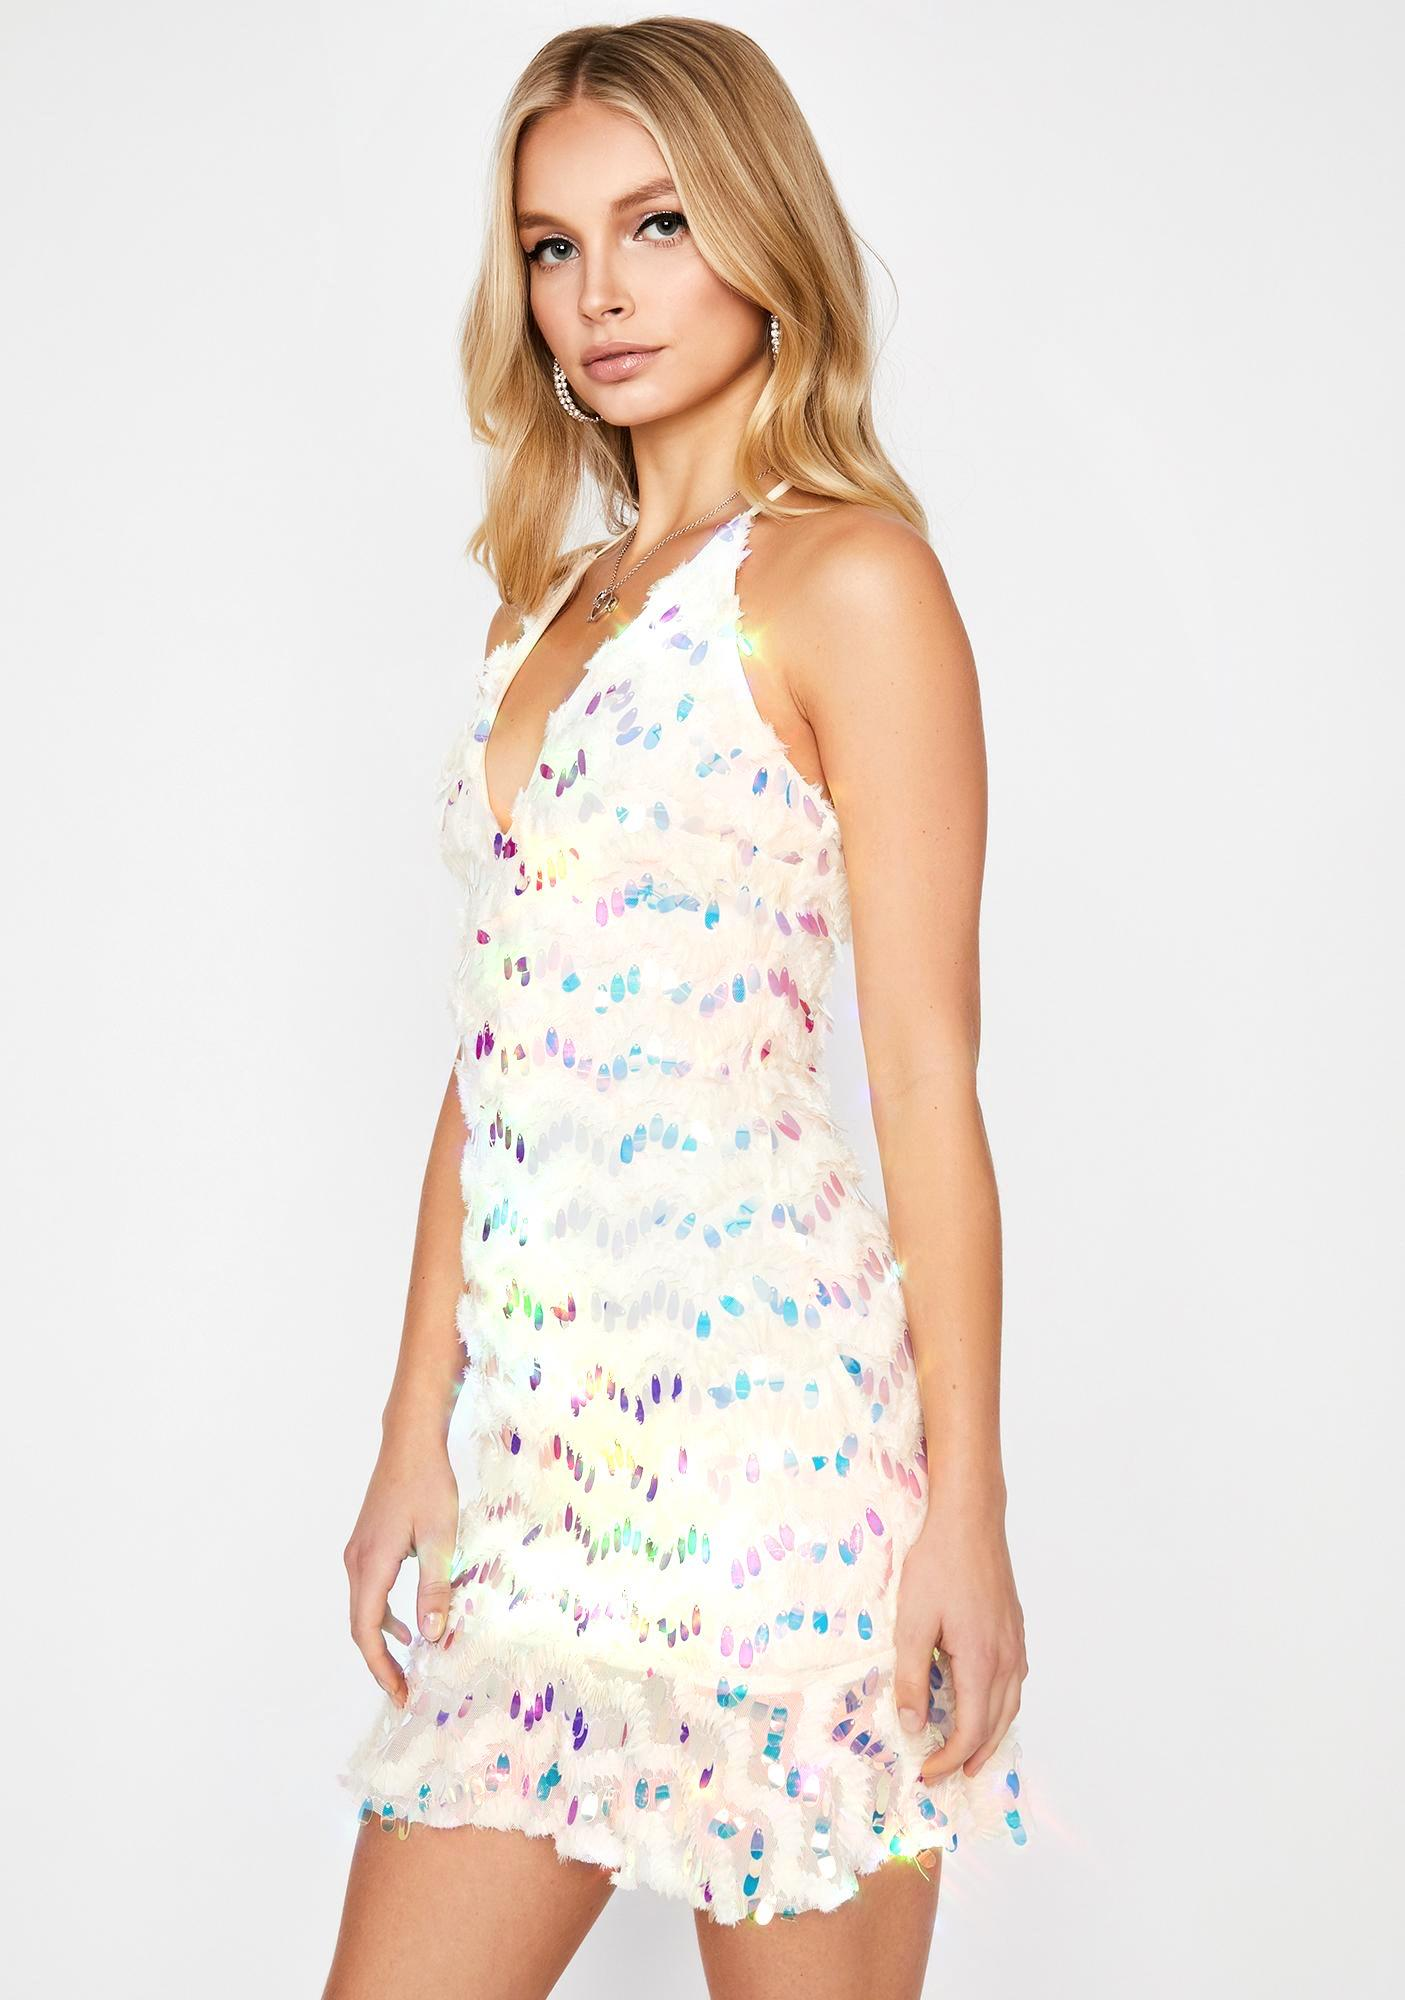 Siren Ecstasy Sequin Dress